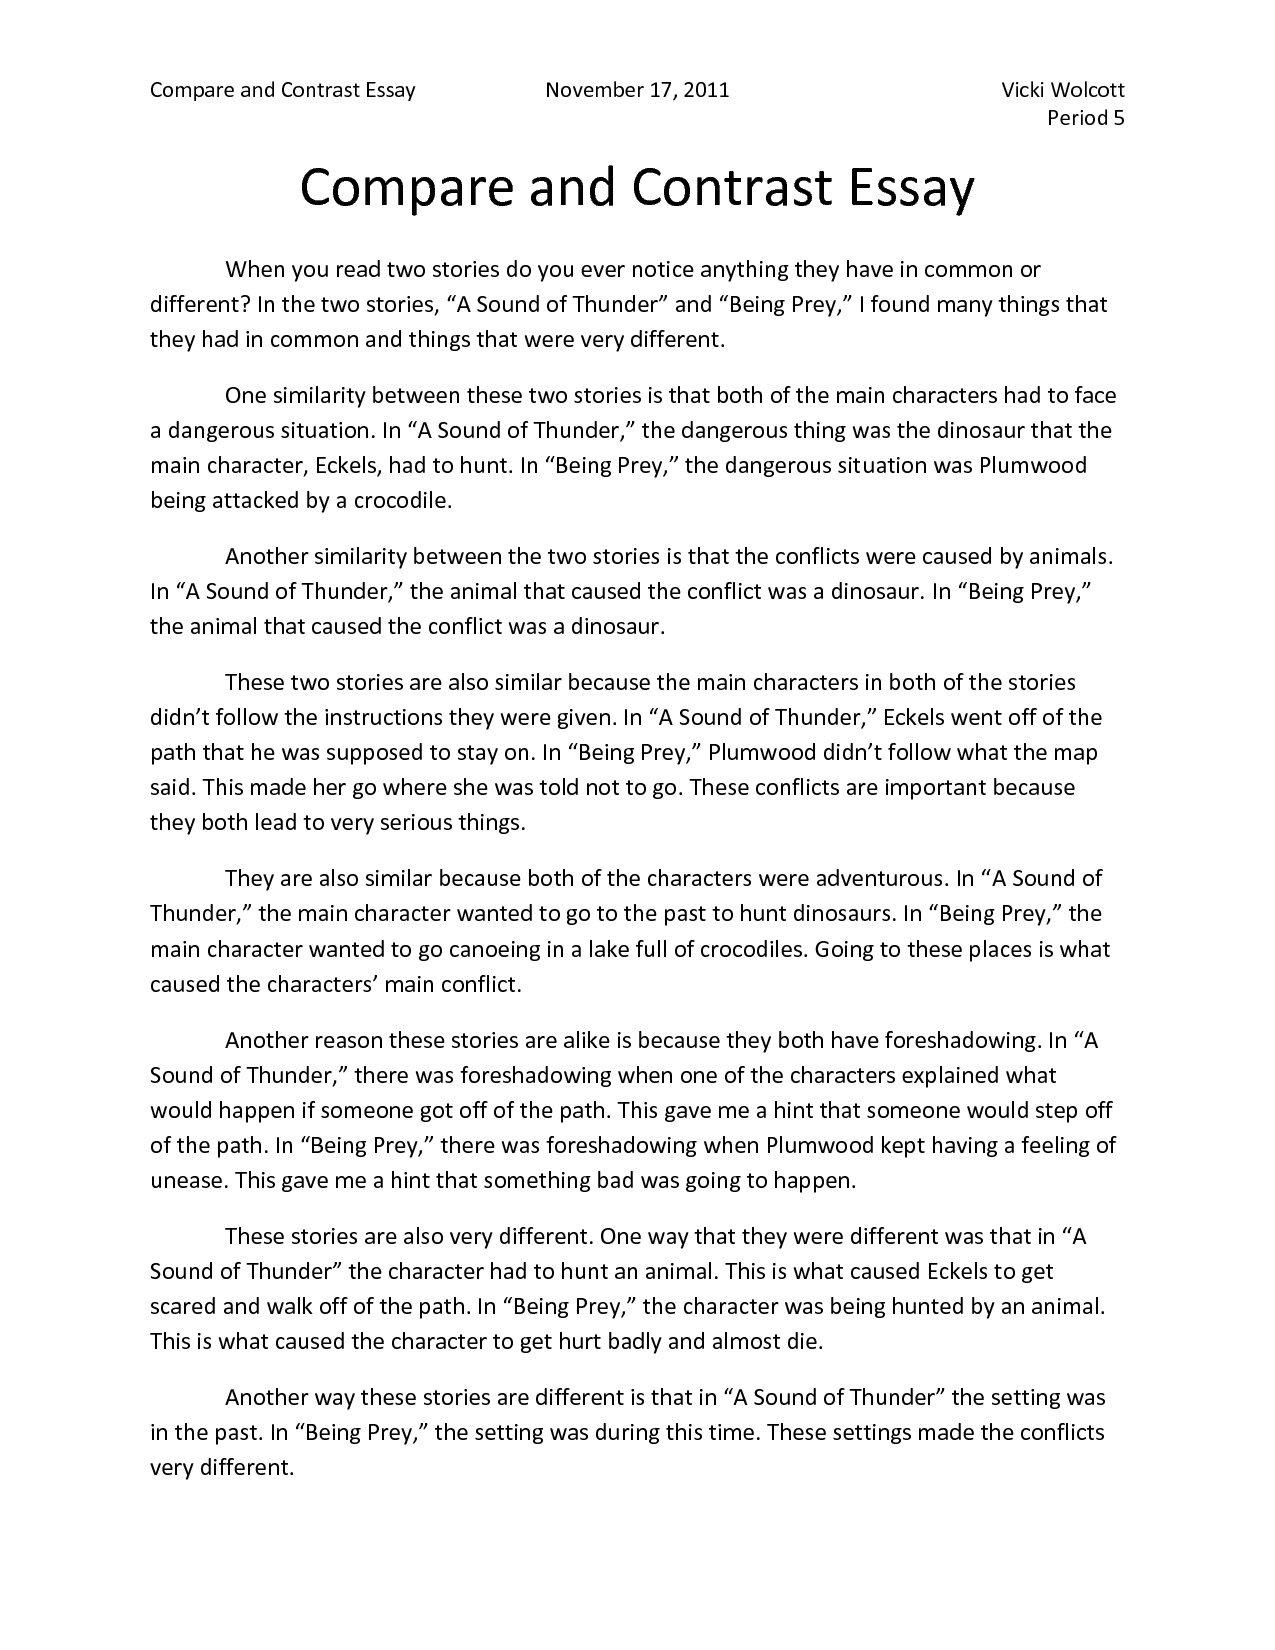 001 Essay Example Comparison Compare And Contrast Basic Incredible Thesis Statement Topics Toefl High School Full